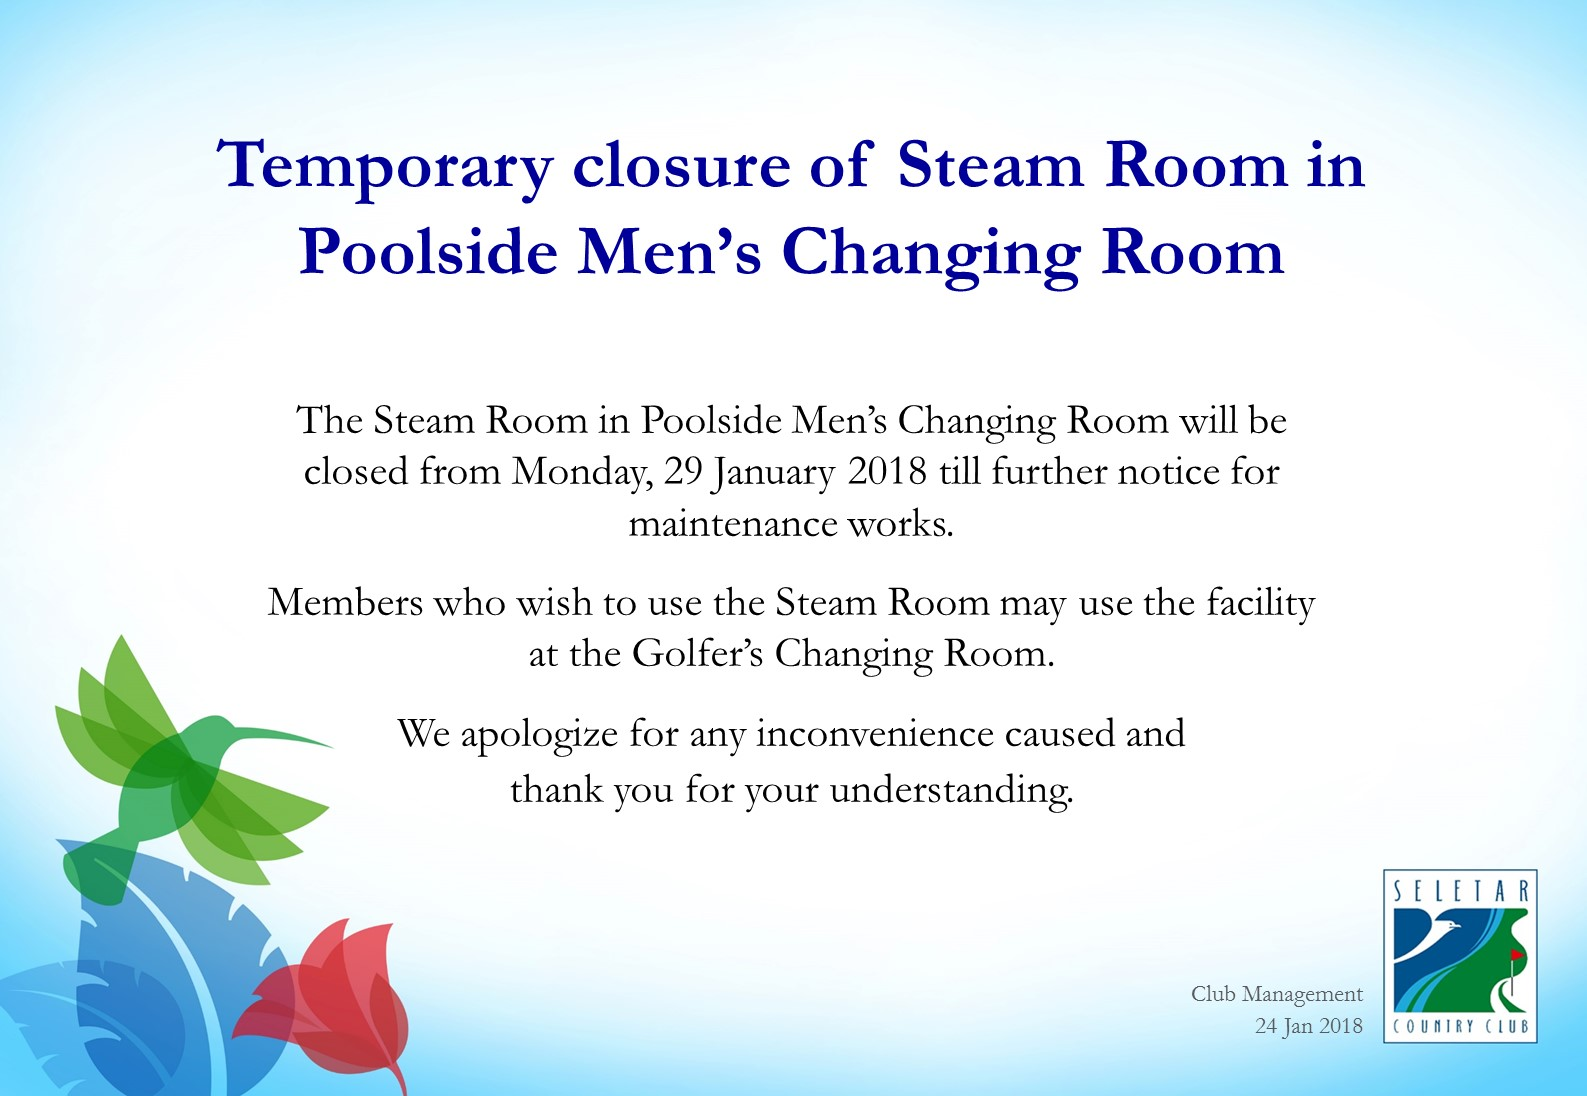 Temporary closure of Steam Room in Men's Poolside Changing Room